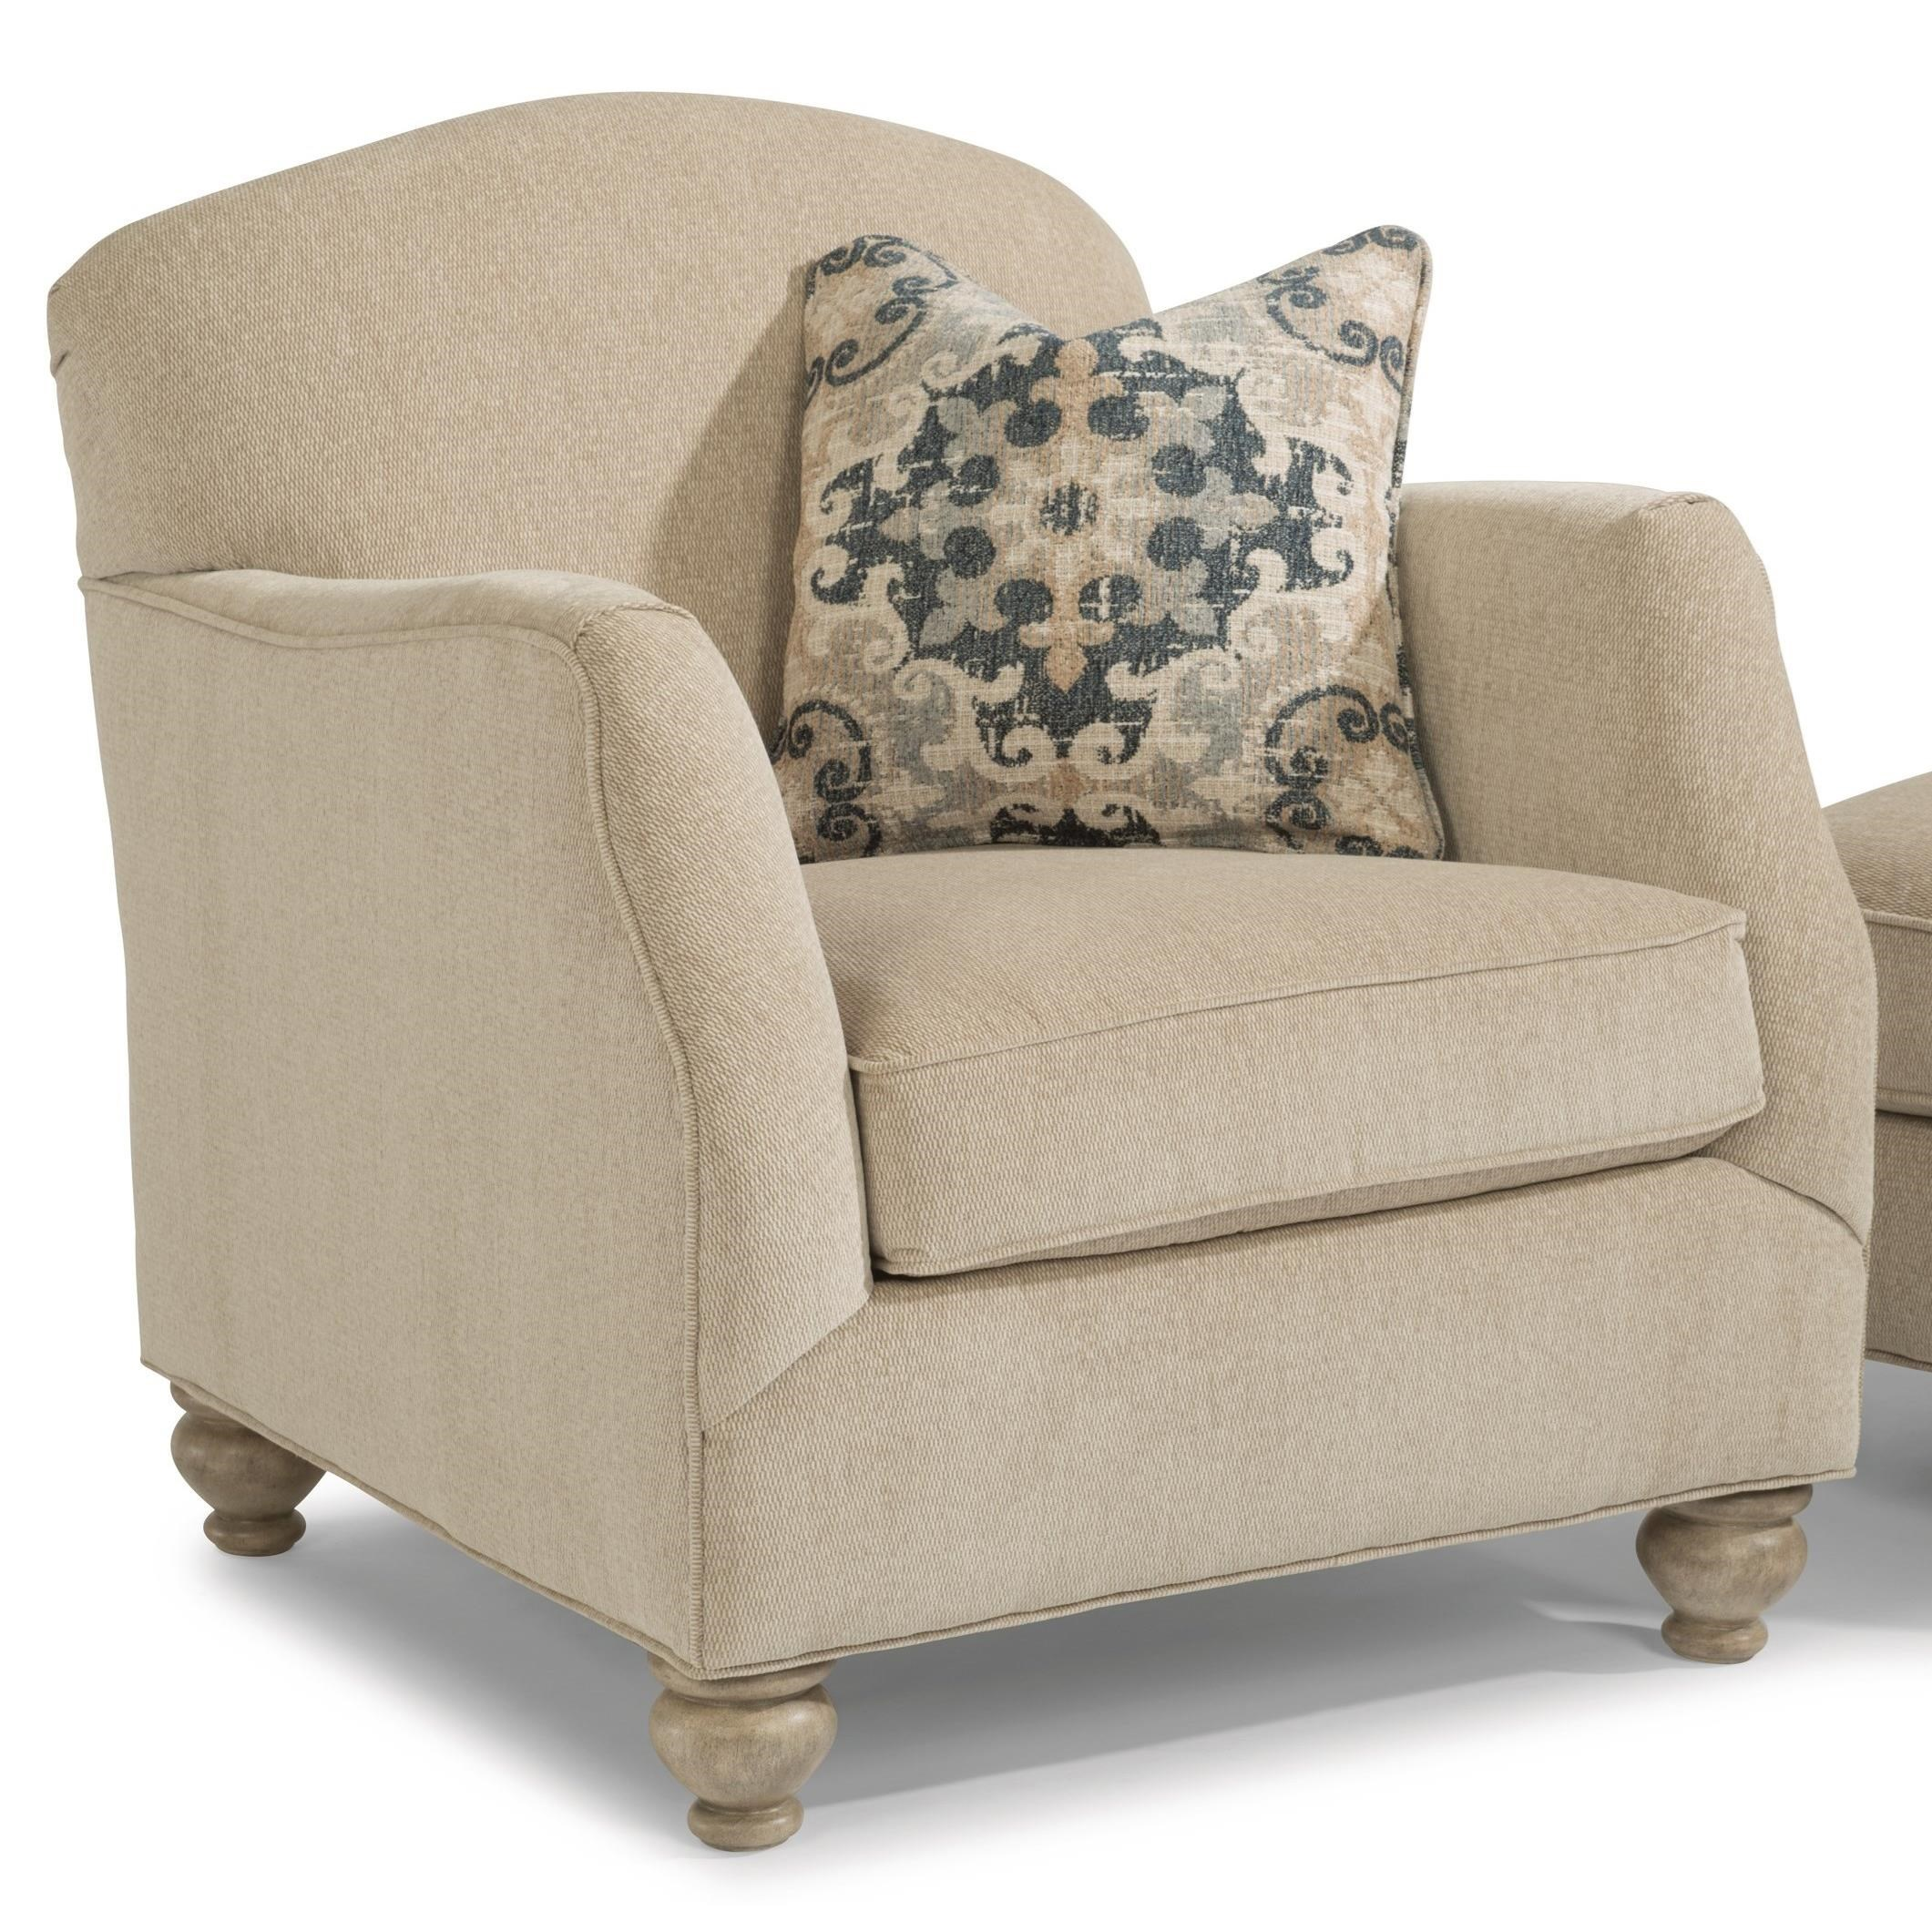 Plymouth Furniture Clearance Flexsteel Plymouth Transitional Chair With Bun Feet